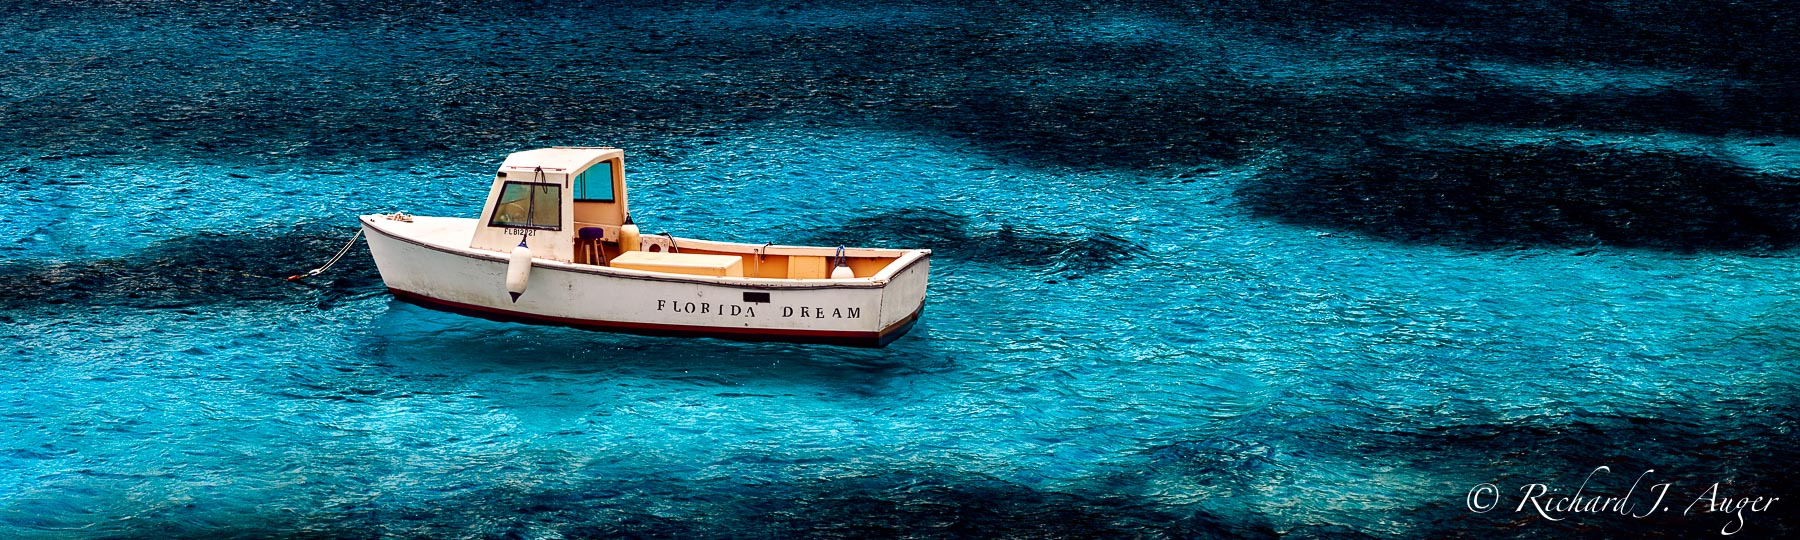 Florida Dream, Fishing Boat, Blue Water, Coastal